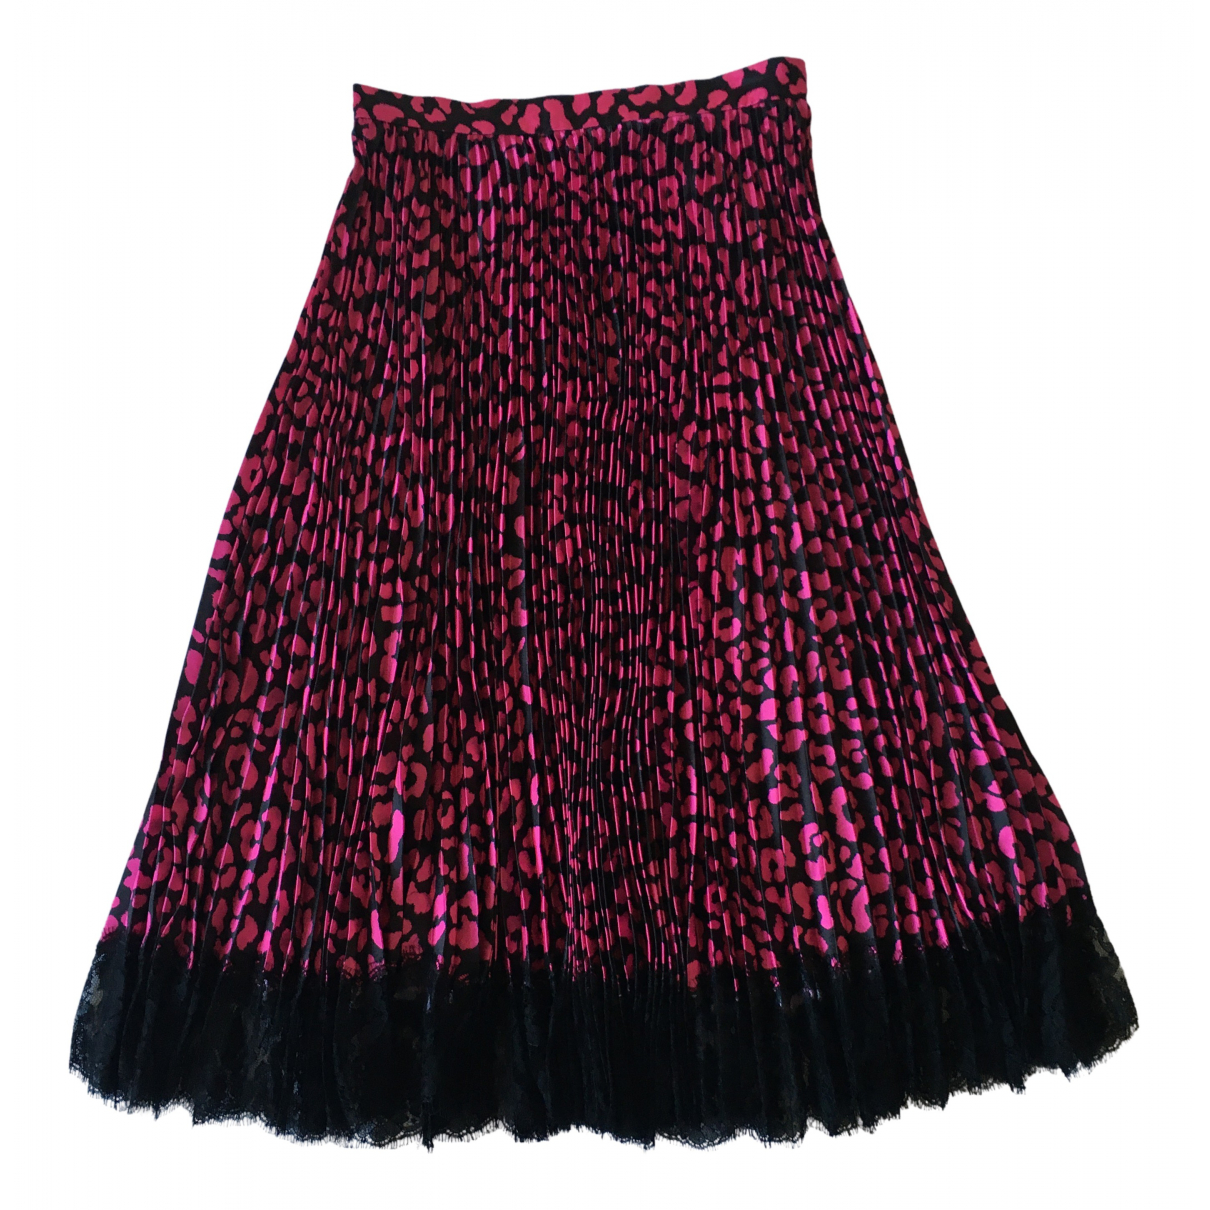 Christopher Kane N Pink skirt for Women 6 UK